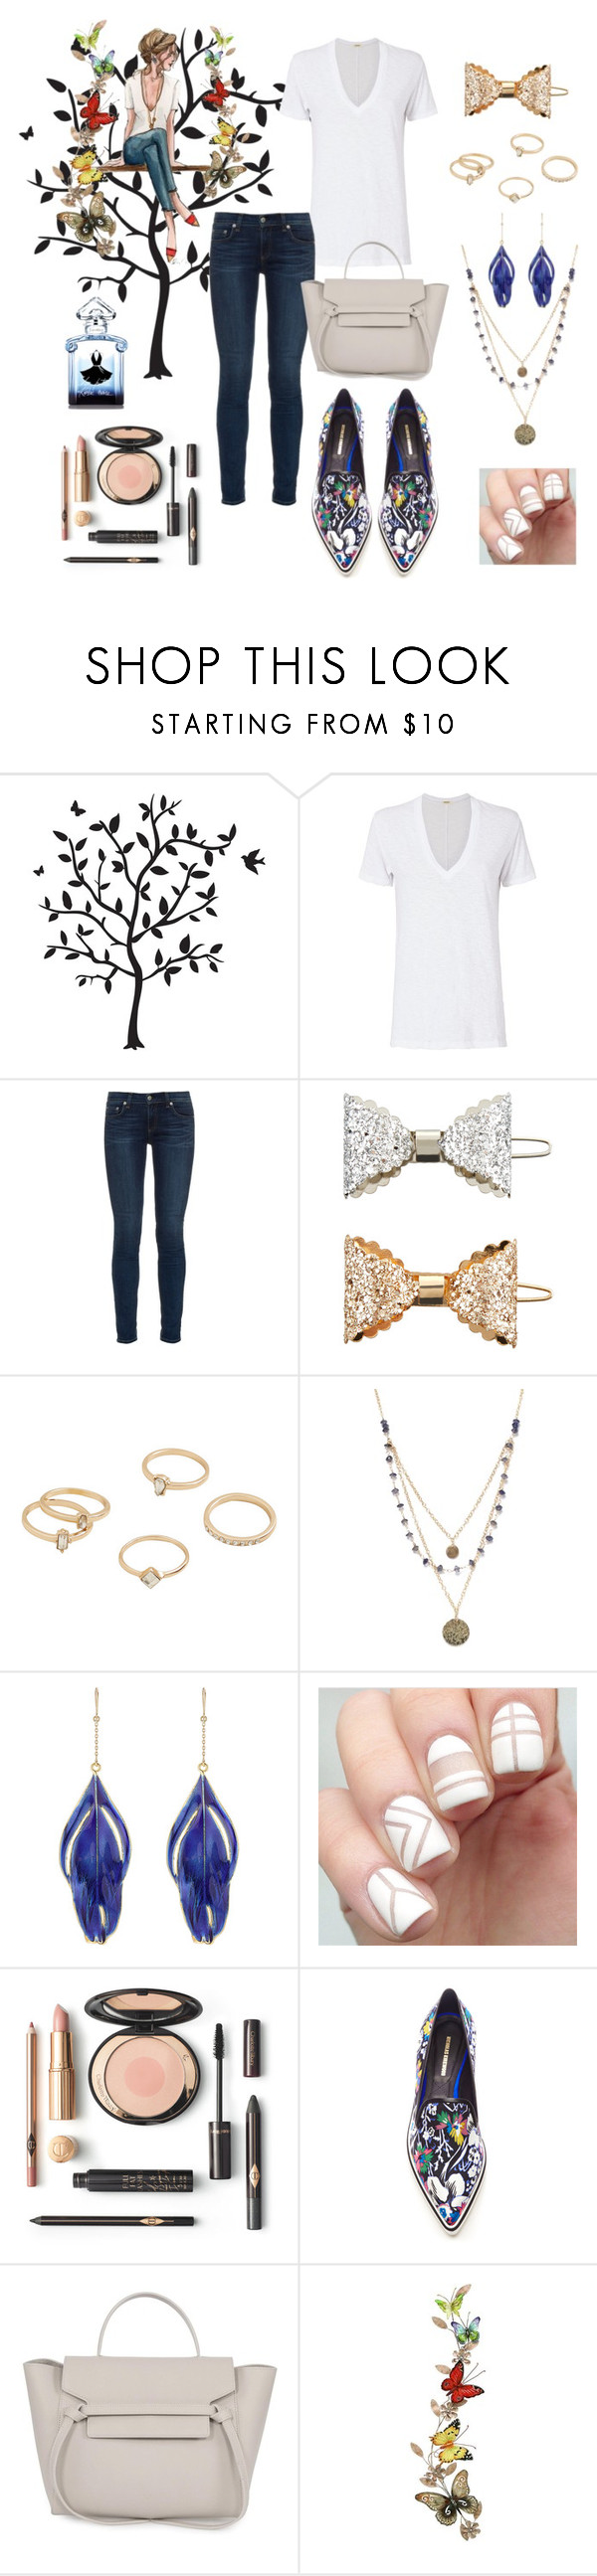 """""""b-fly"""" by lafeur ❤ liked on Polyvore featuring Godinger, Monrow, rag & bone, Accessorize, MANGO, Alicia Marilyn Designs, Aurélie Bidermann, Nicholas Kirkwood, Home Decorators Collection and Guerlain"""